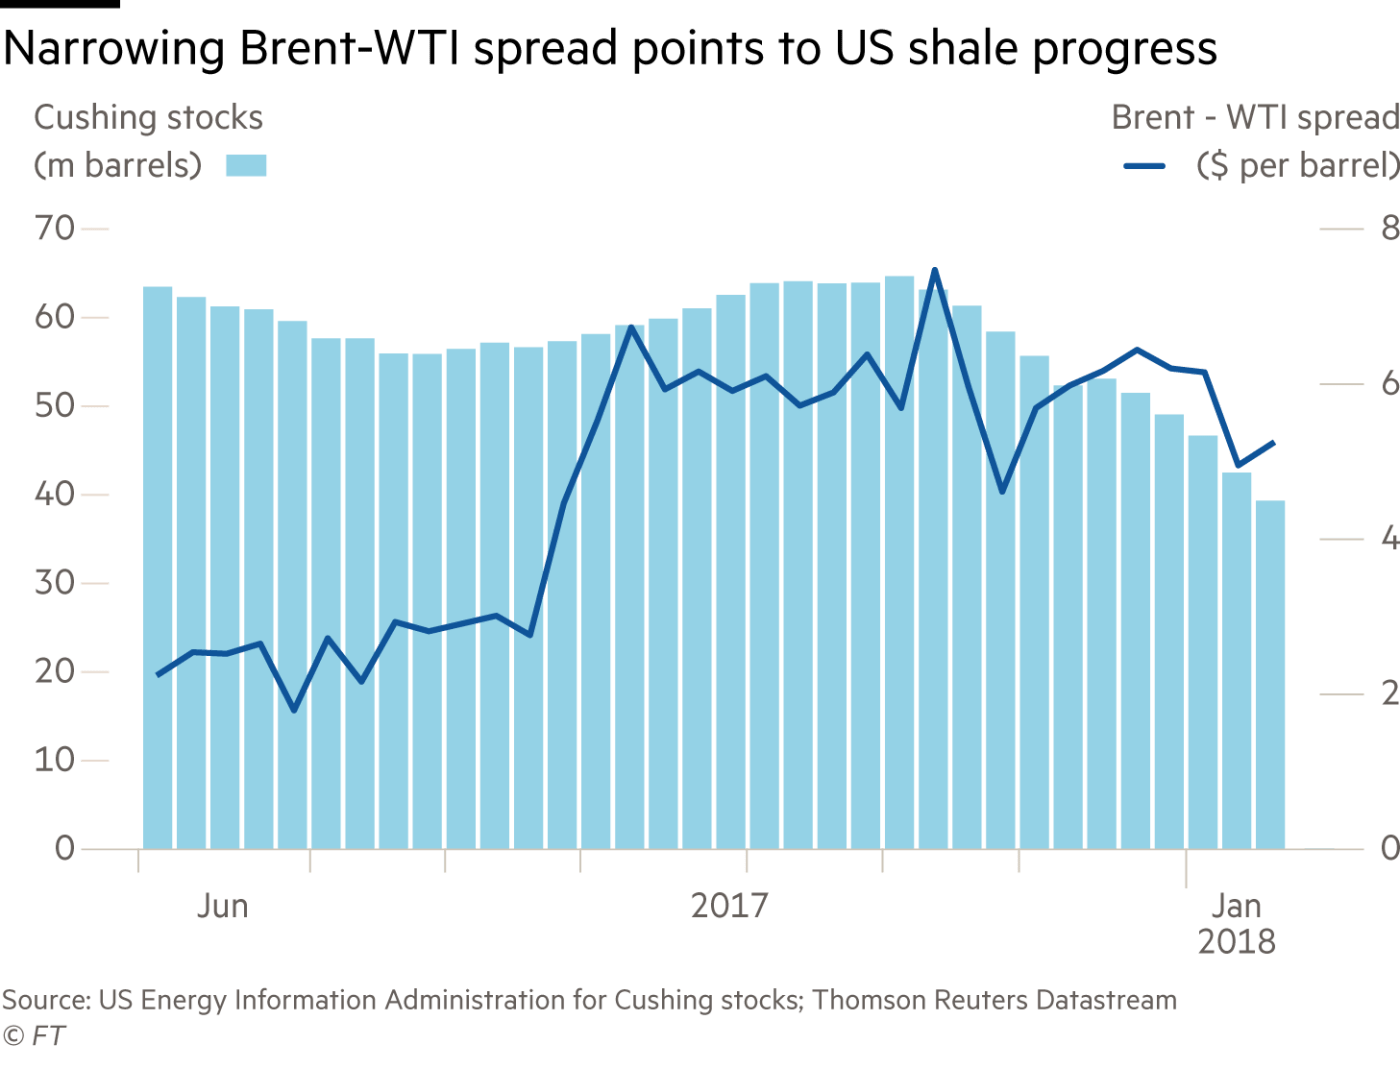 The best of the ft legal services the so called brent wti spread measuring the difference between the worlds two main oil benchmarks is one of the clearest gauges of the health of the us fandeluxe Image collections